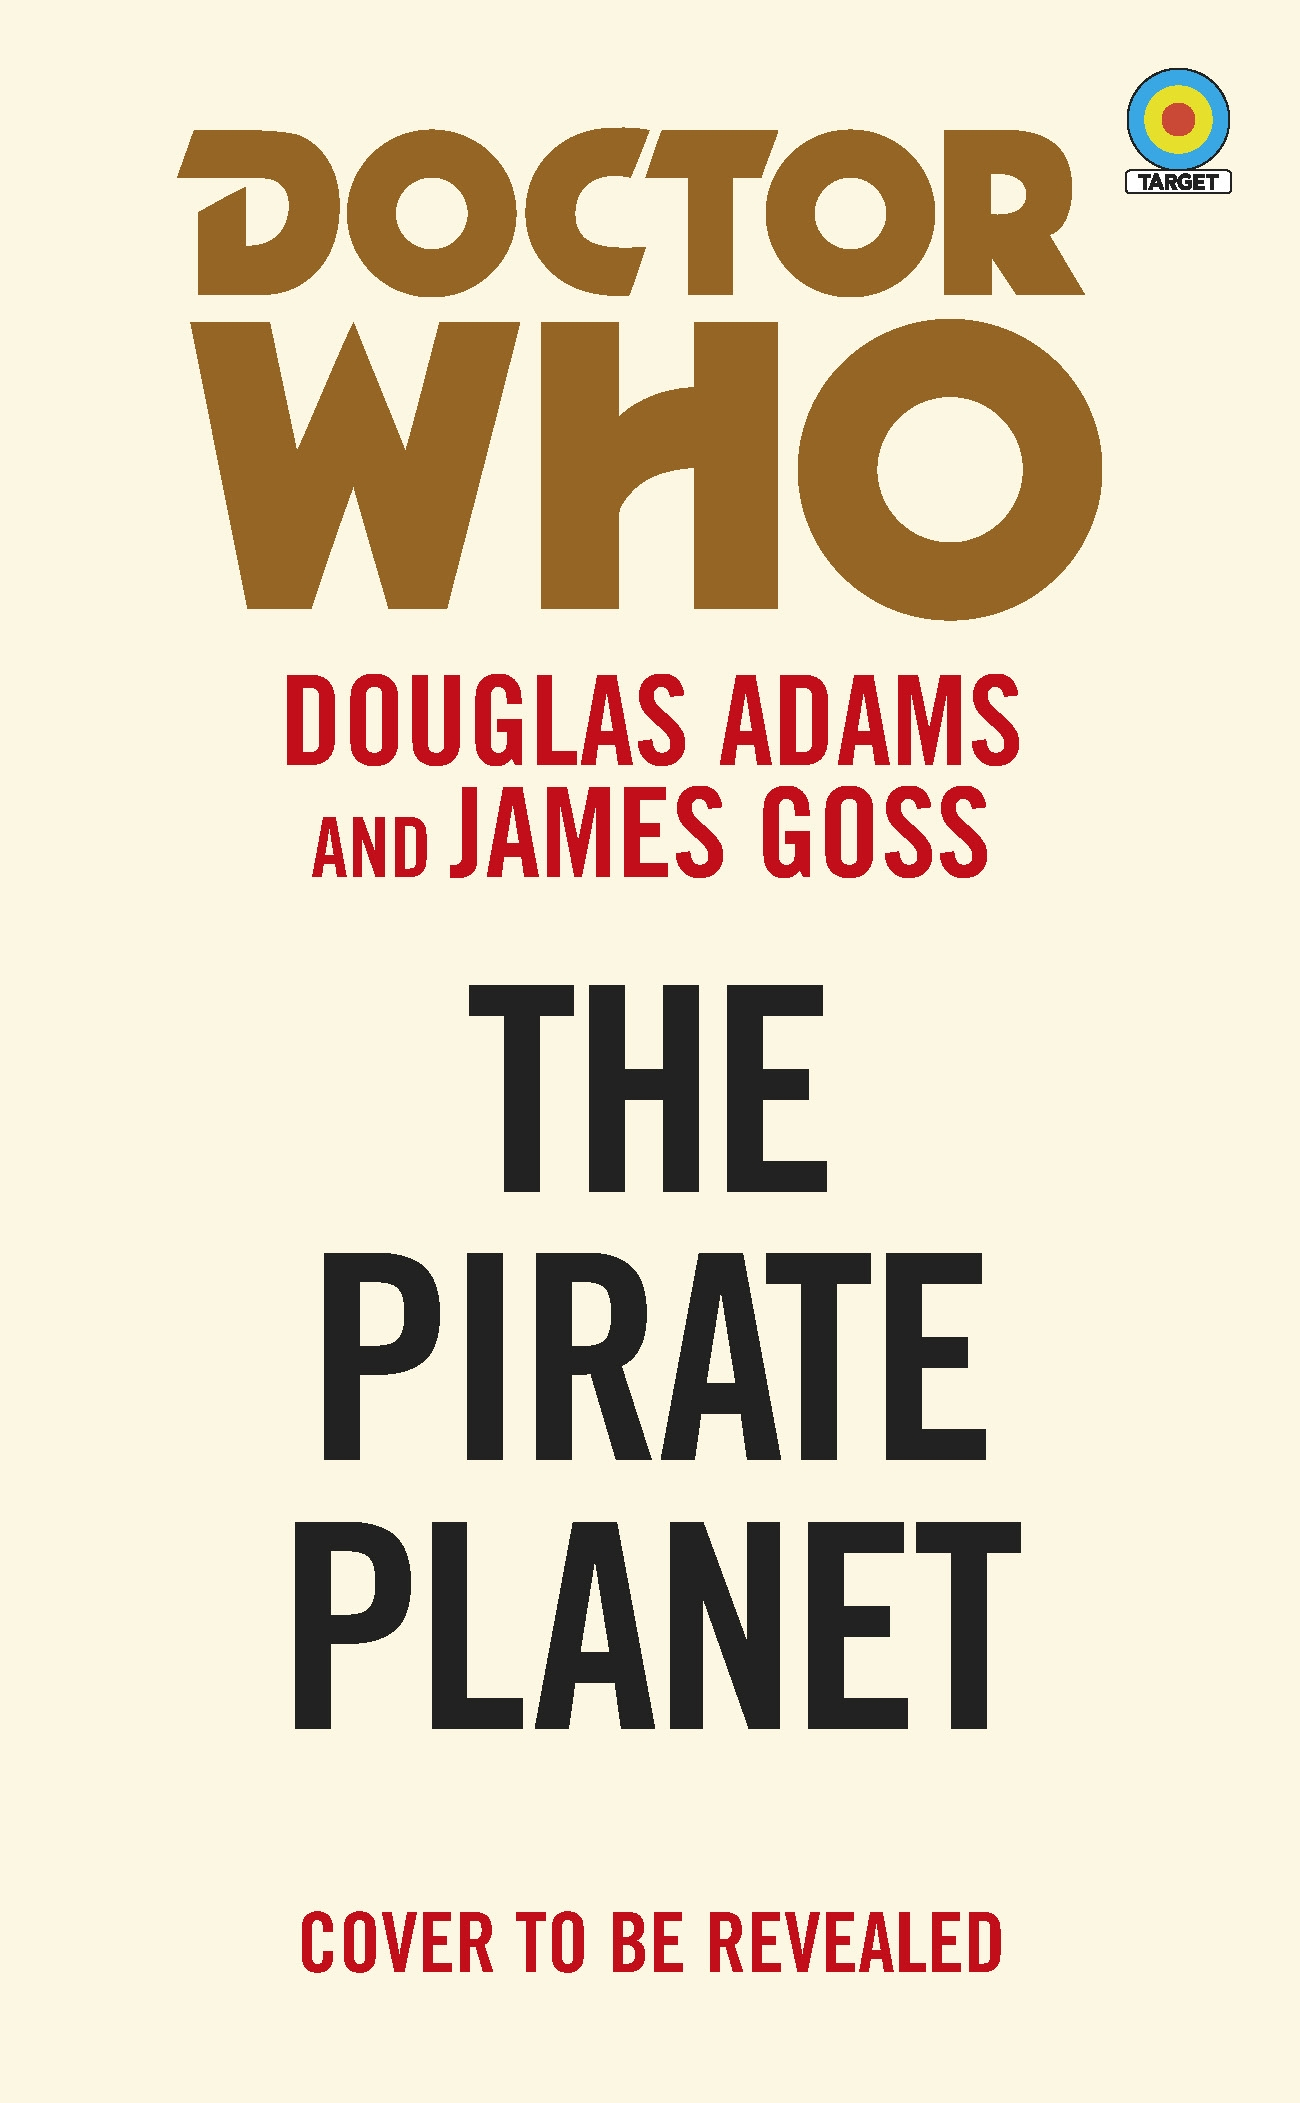 DOCTOR WHO TARGET COLLECTION – PIRATE PLANET (Douglas ADAMS) SC